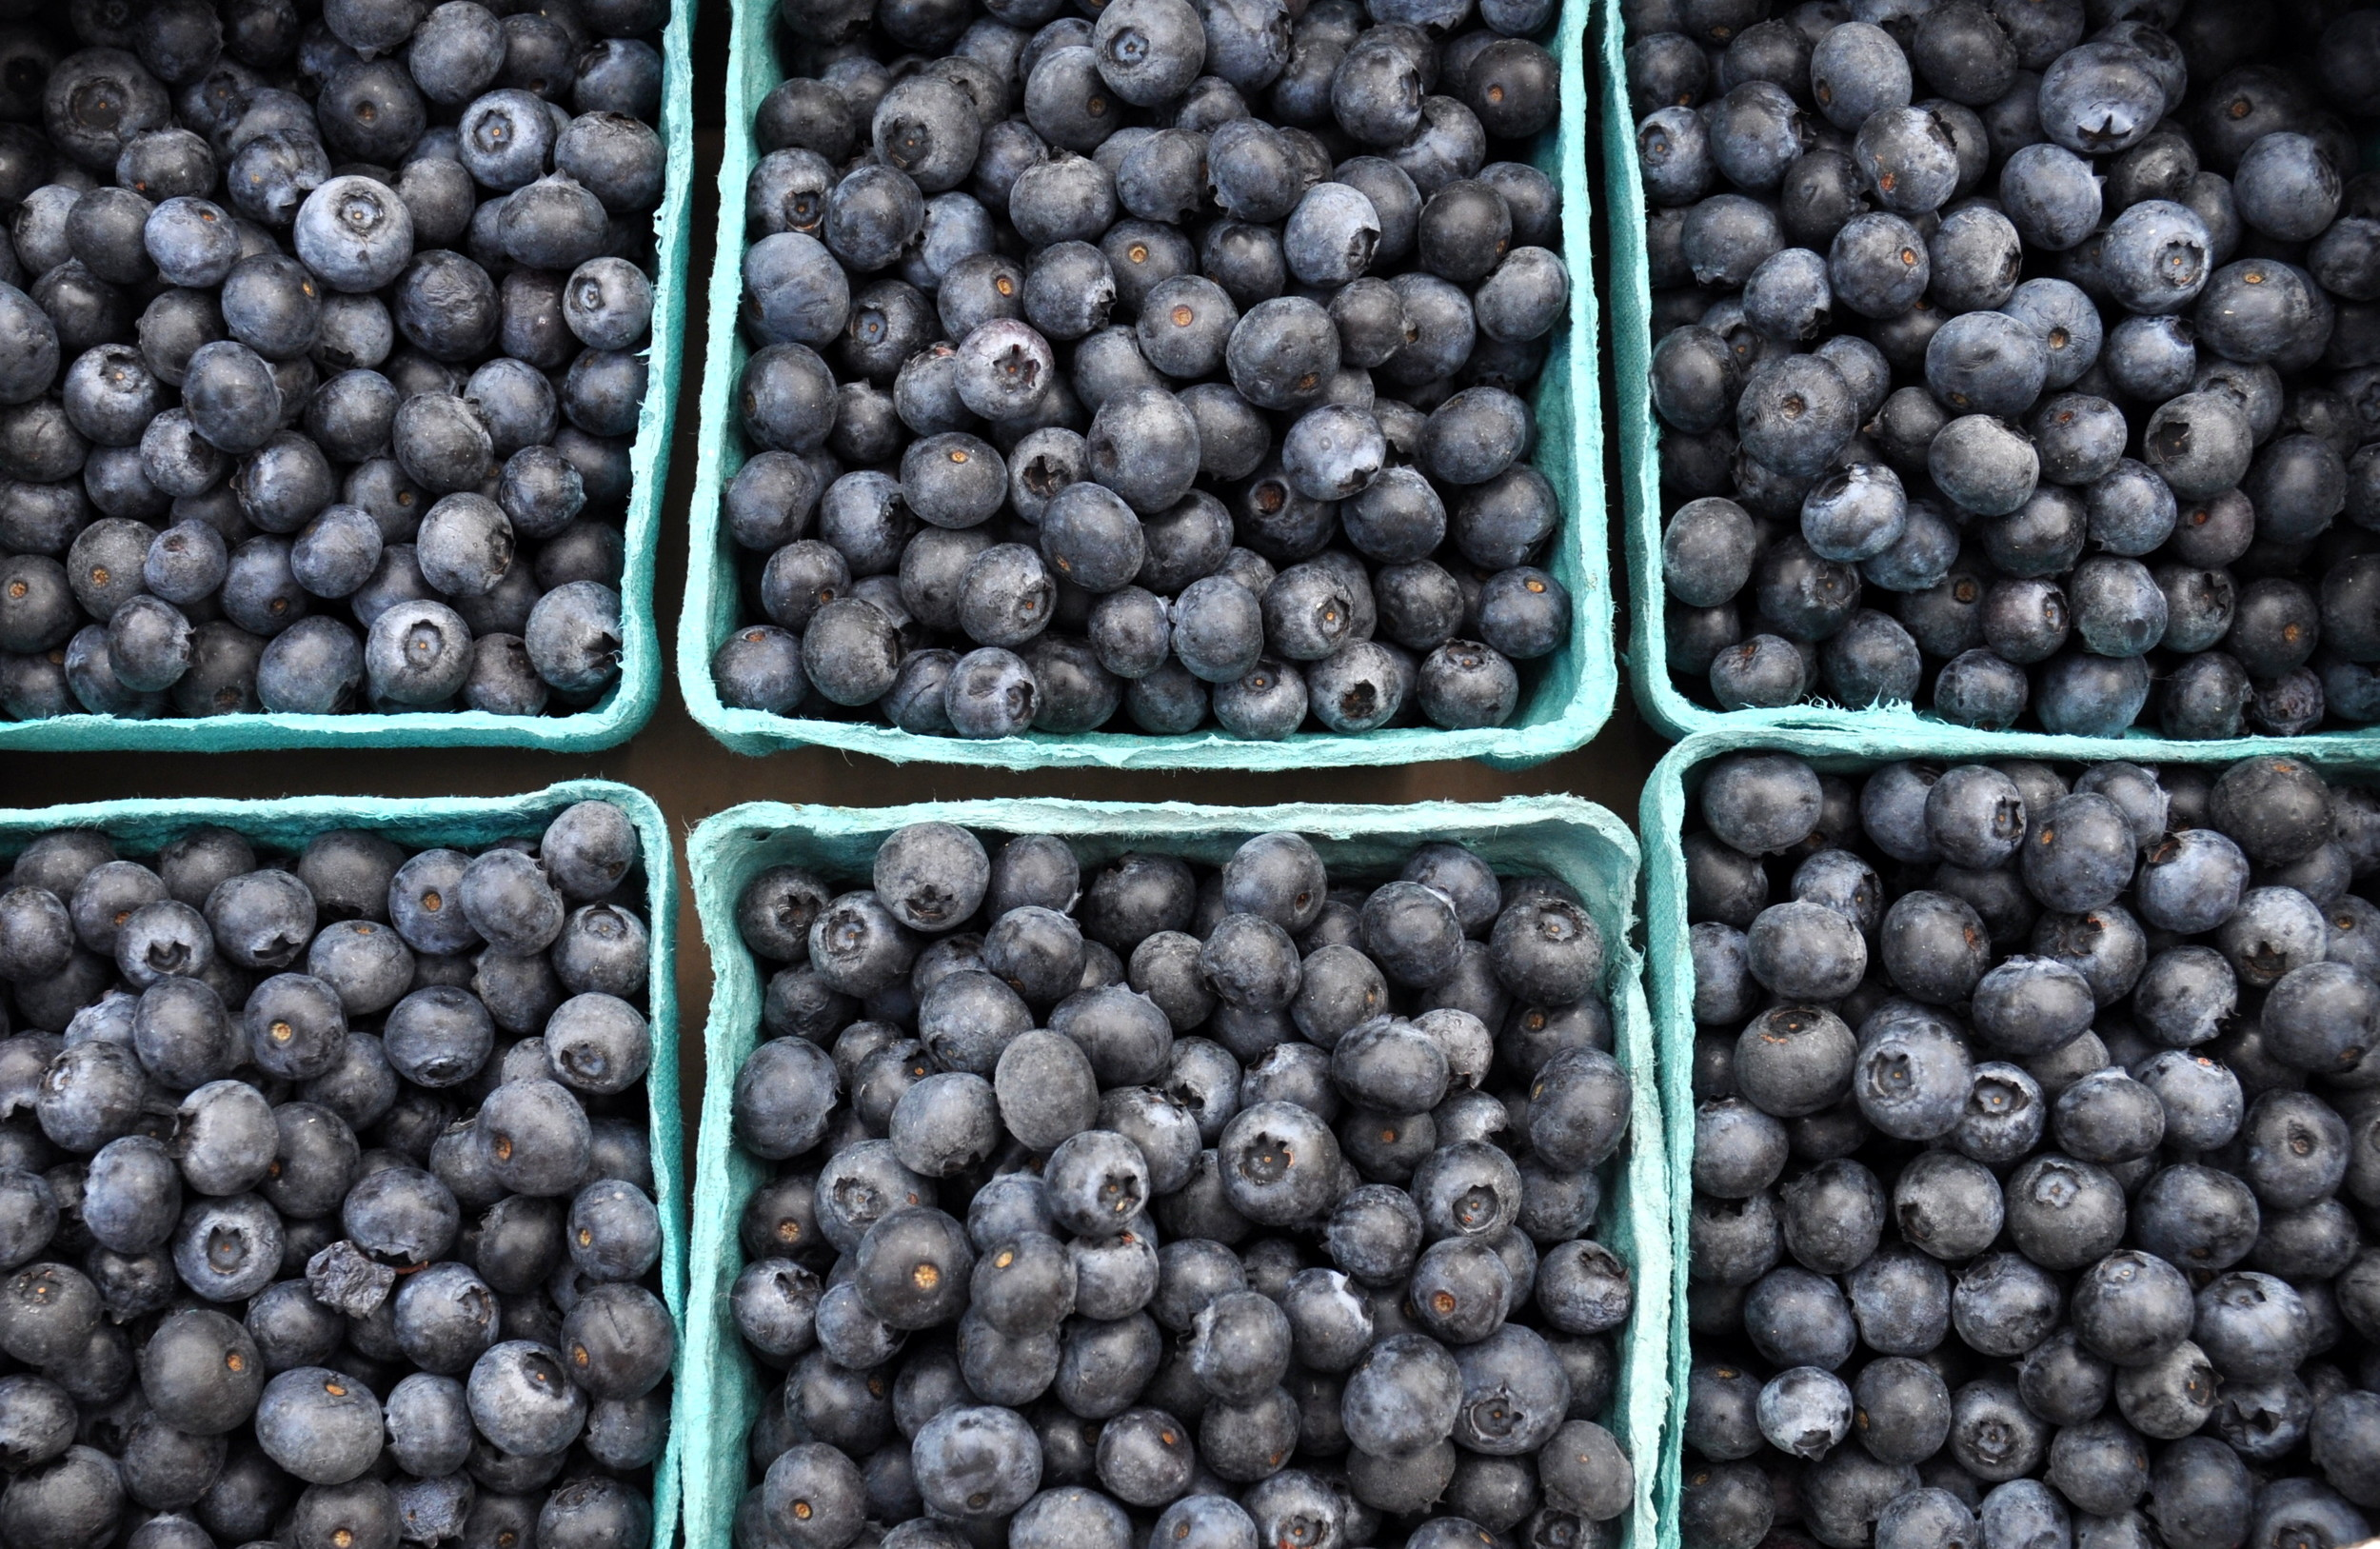 Rubels blueberries from Whitehorse Meadows Organic Blueberry Farm. Photo copyright 2014 by Zachary D. Lyons.